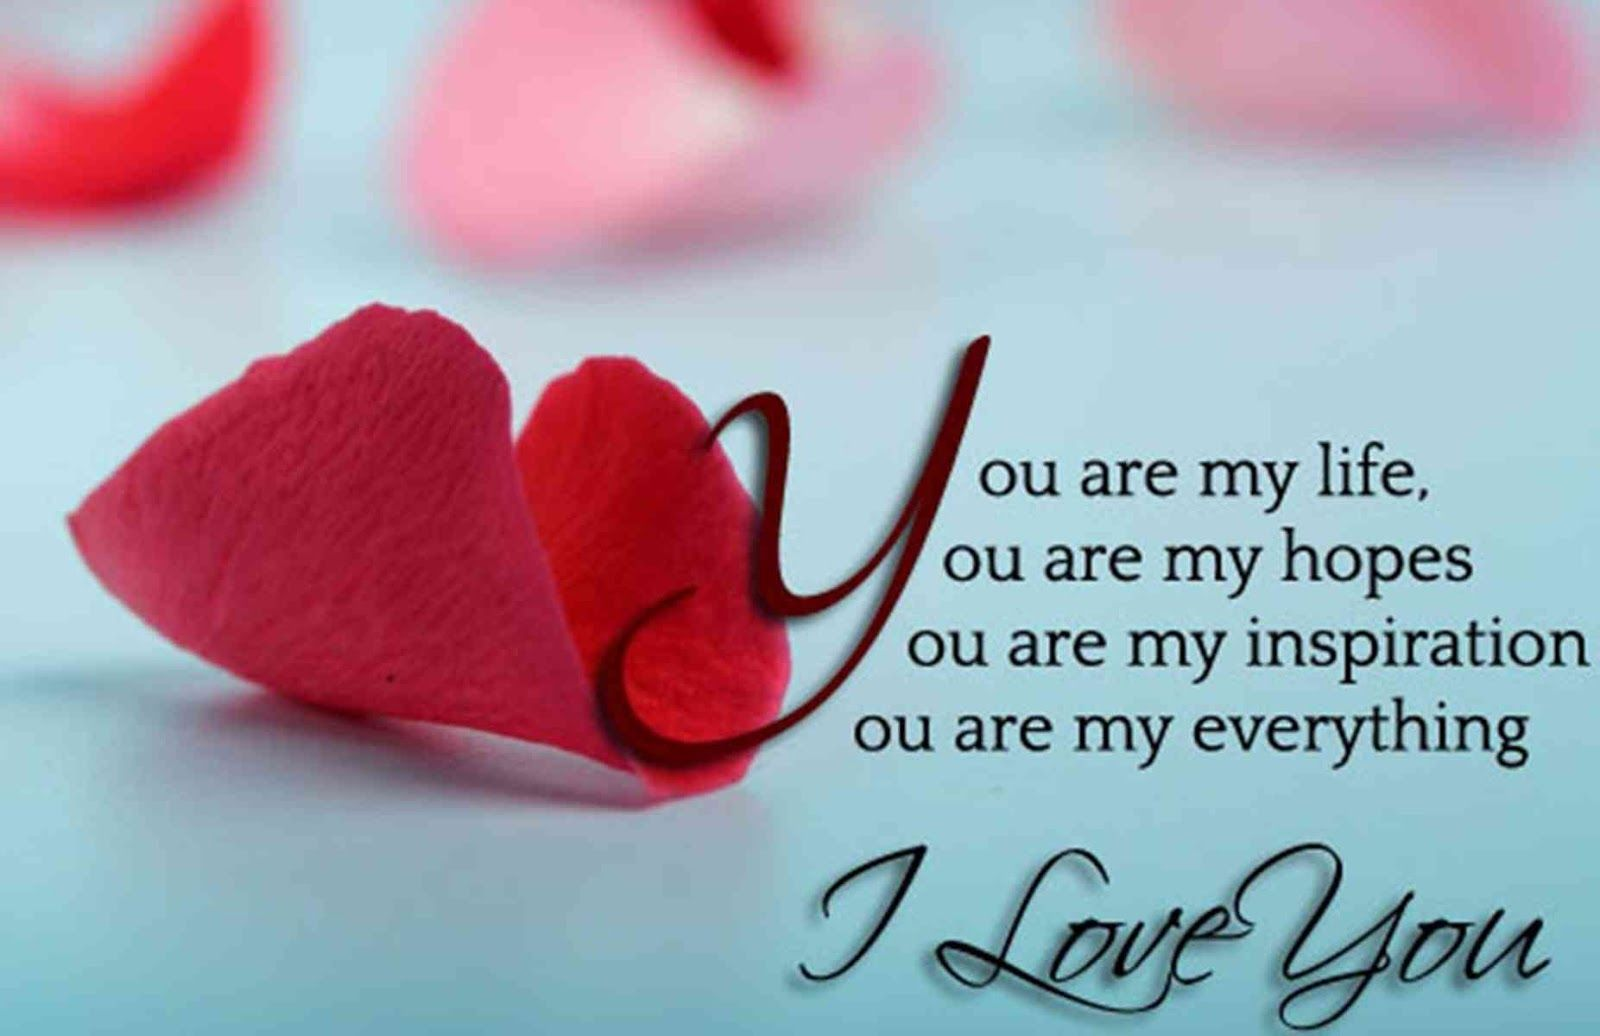 #ValentineMessages #ValentinesDay Romantic Messages, Sms